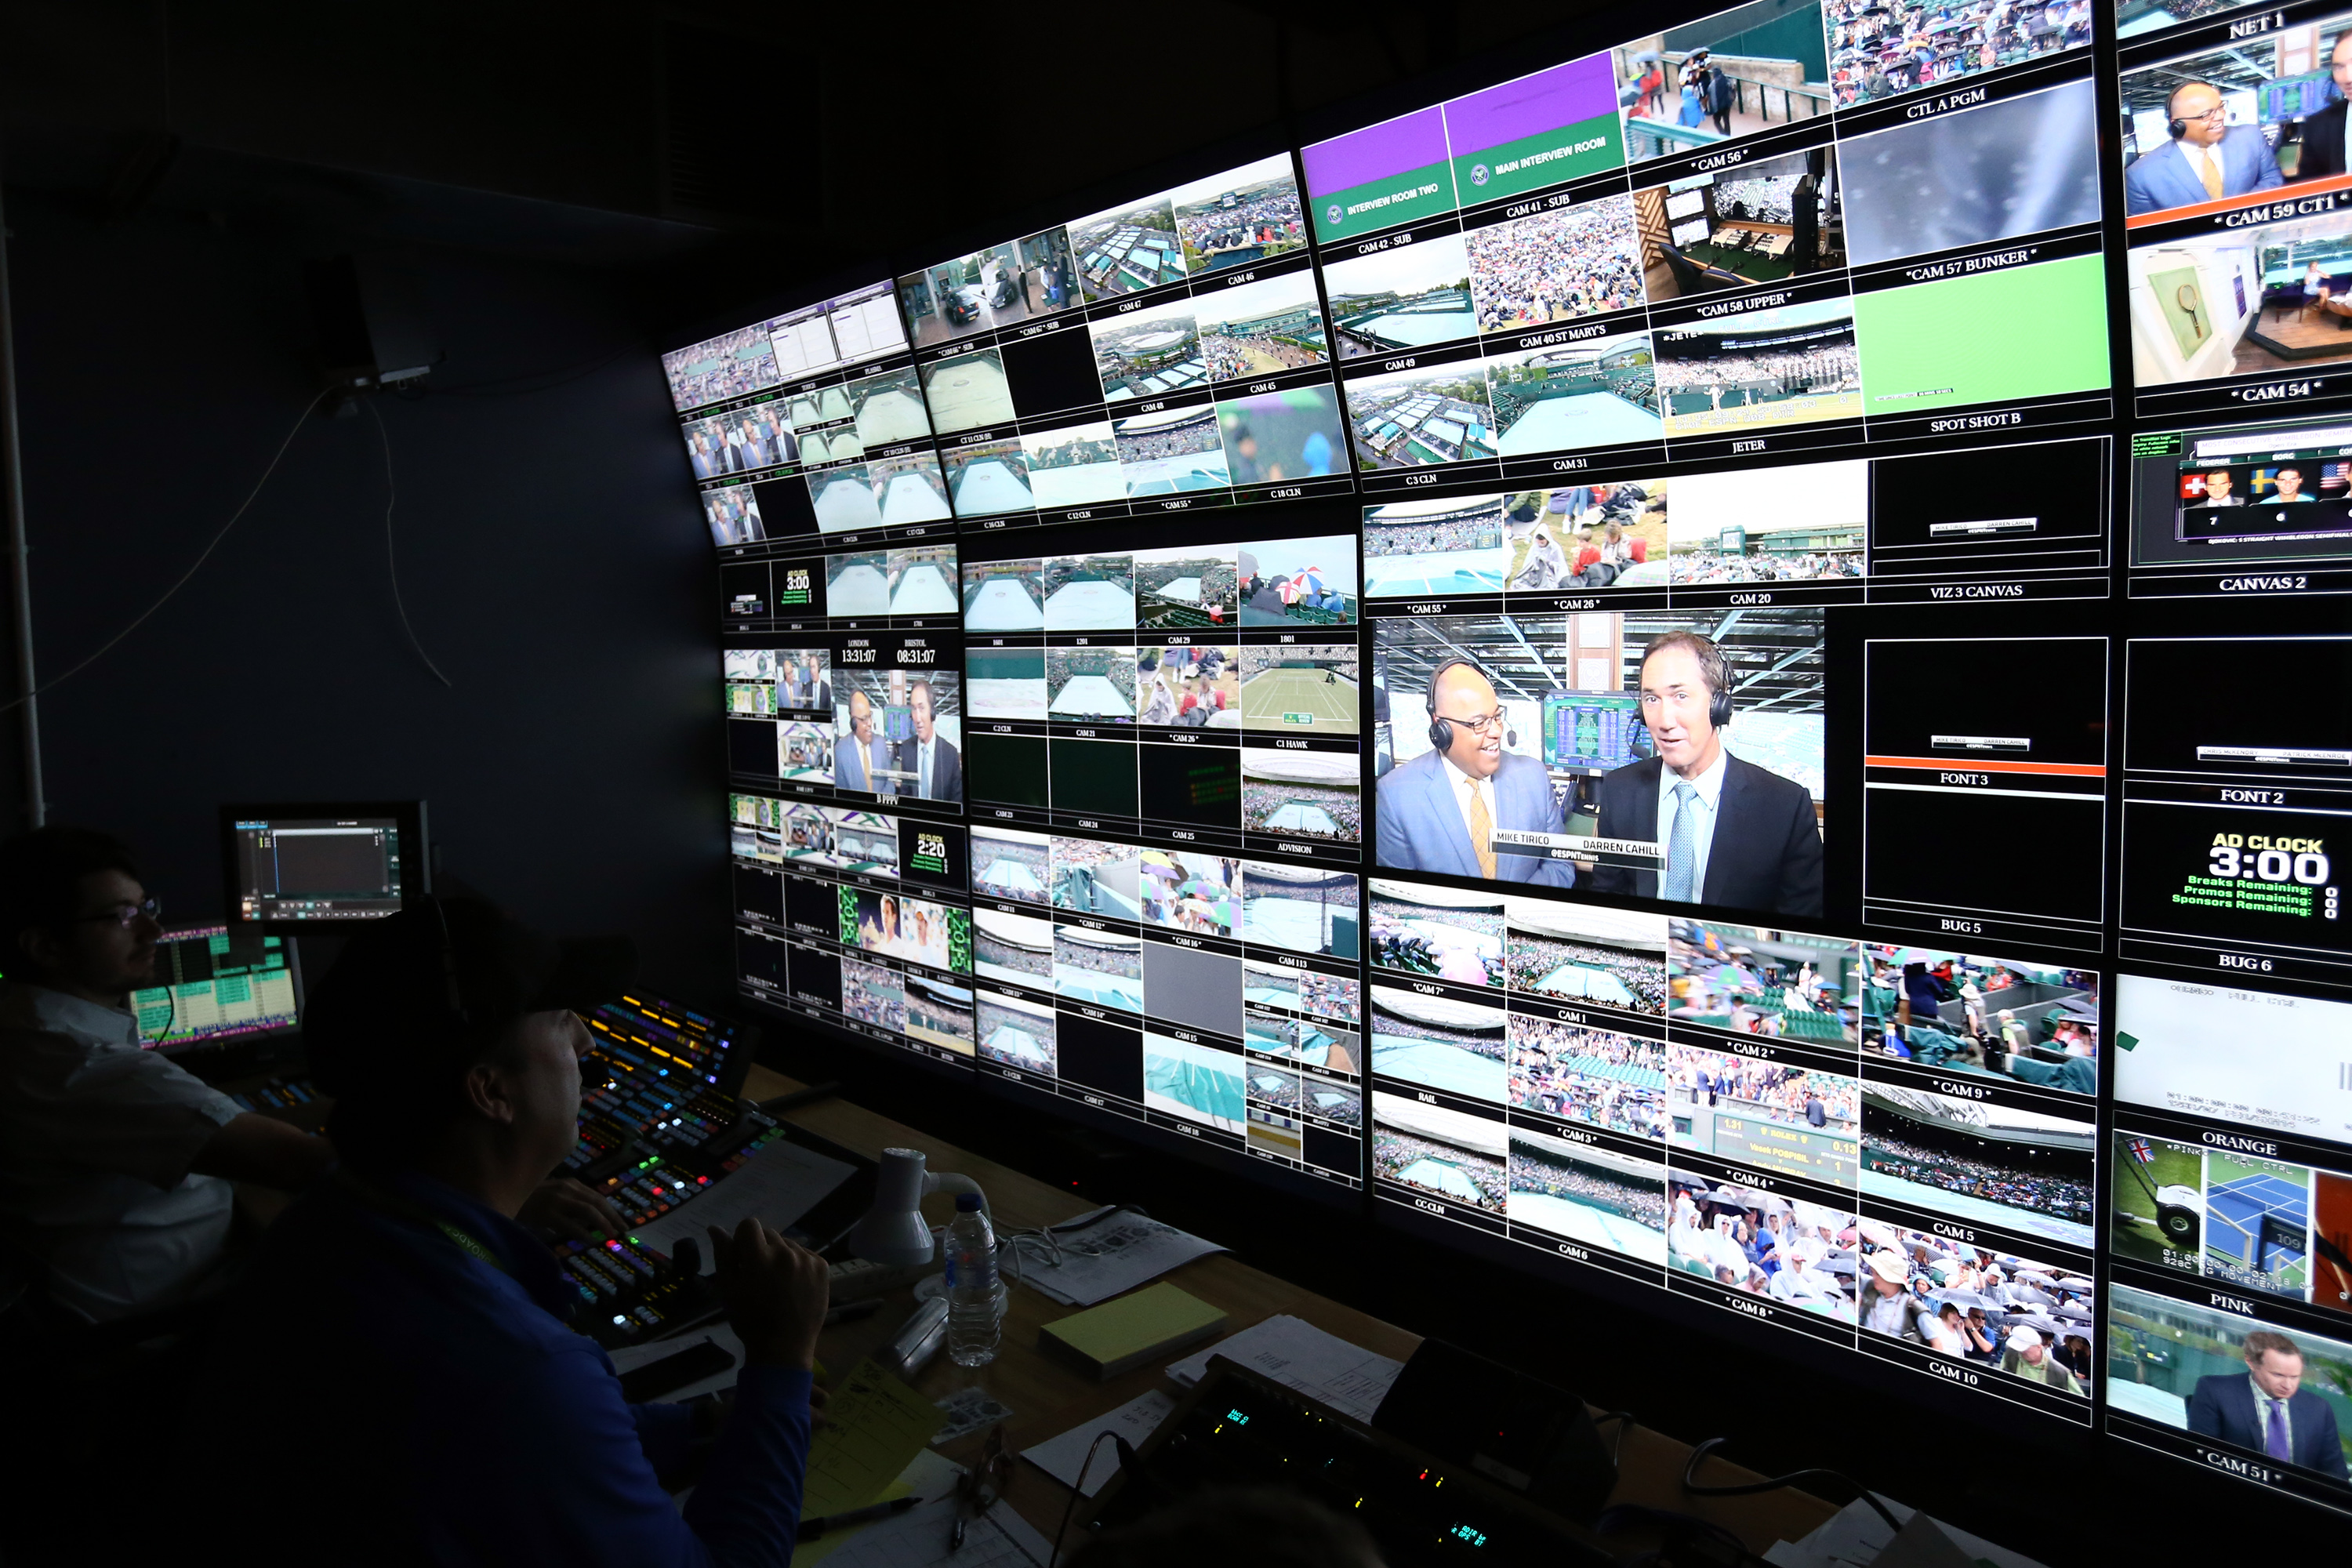 Production staff view screens in an ESPN operation room on day 9 of the Wimbledon Lawn Tennis Championships at the All England Lawn Tennis and Croquet Club on July 8, 2015 in London.